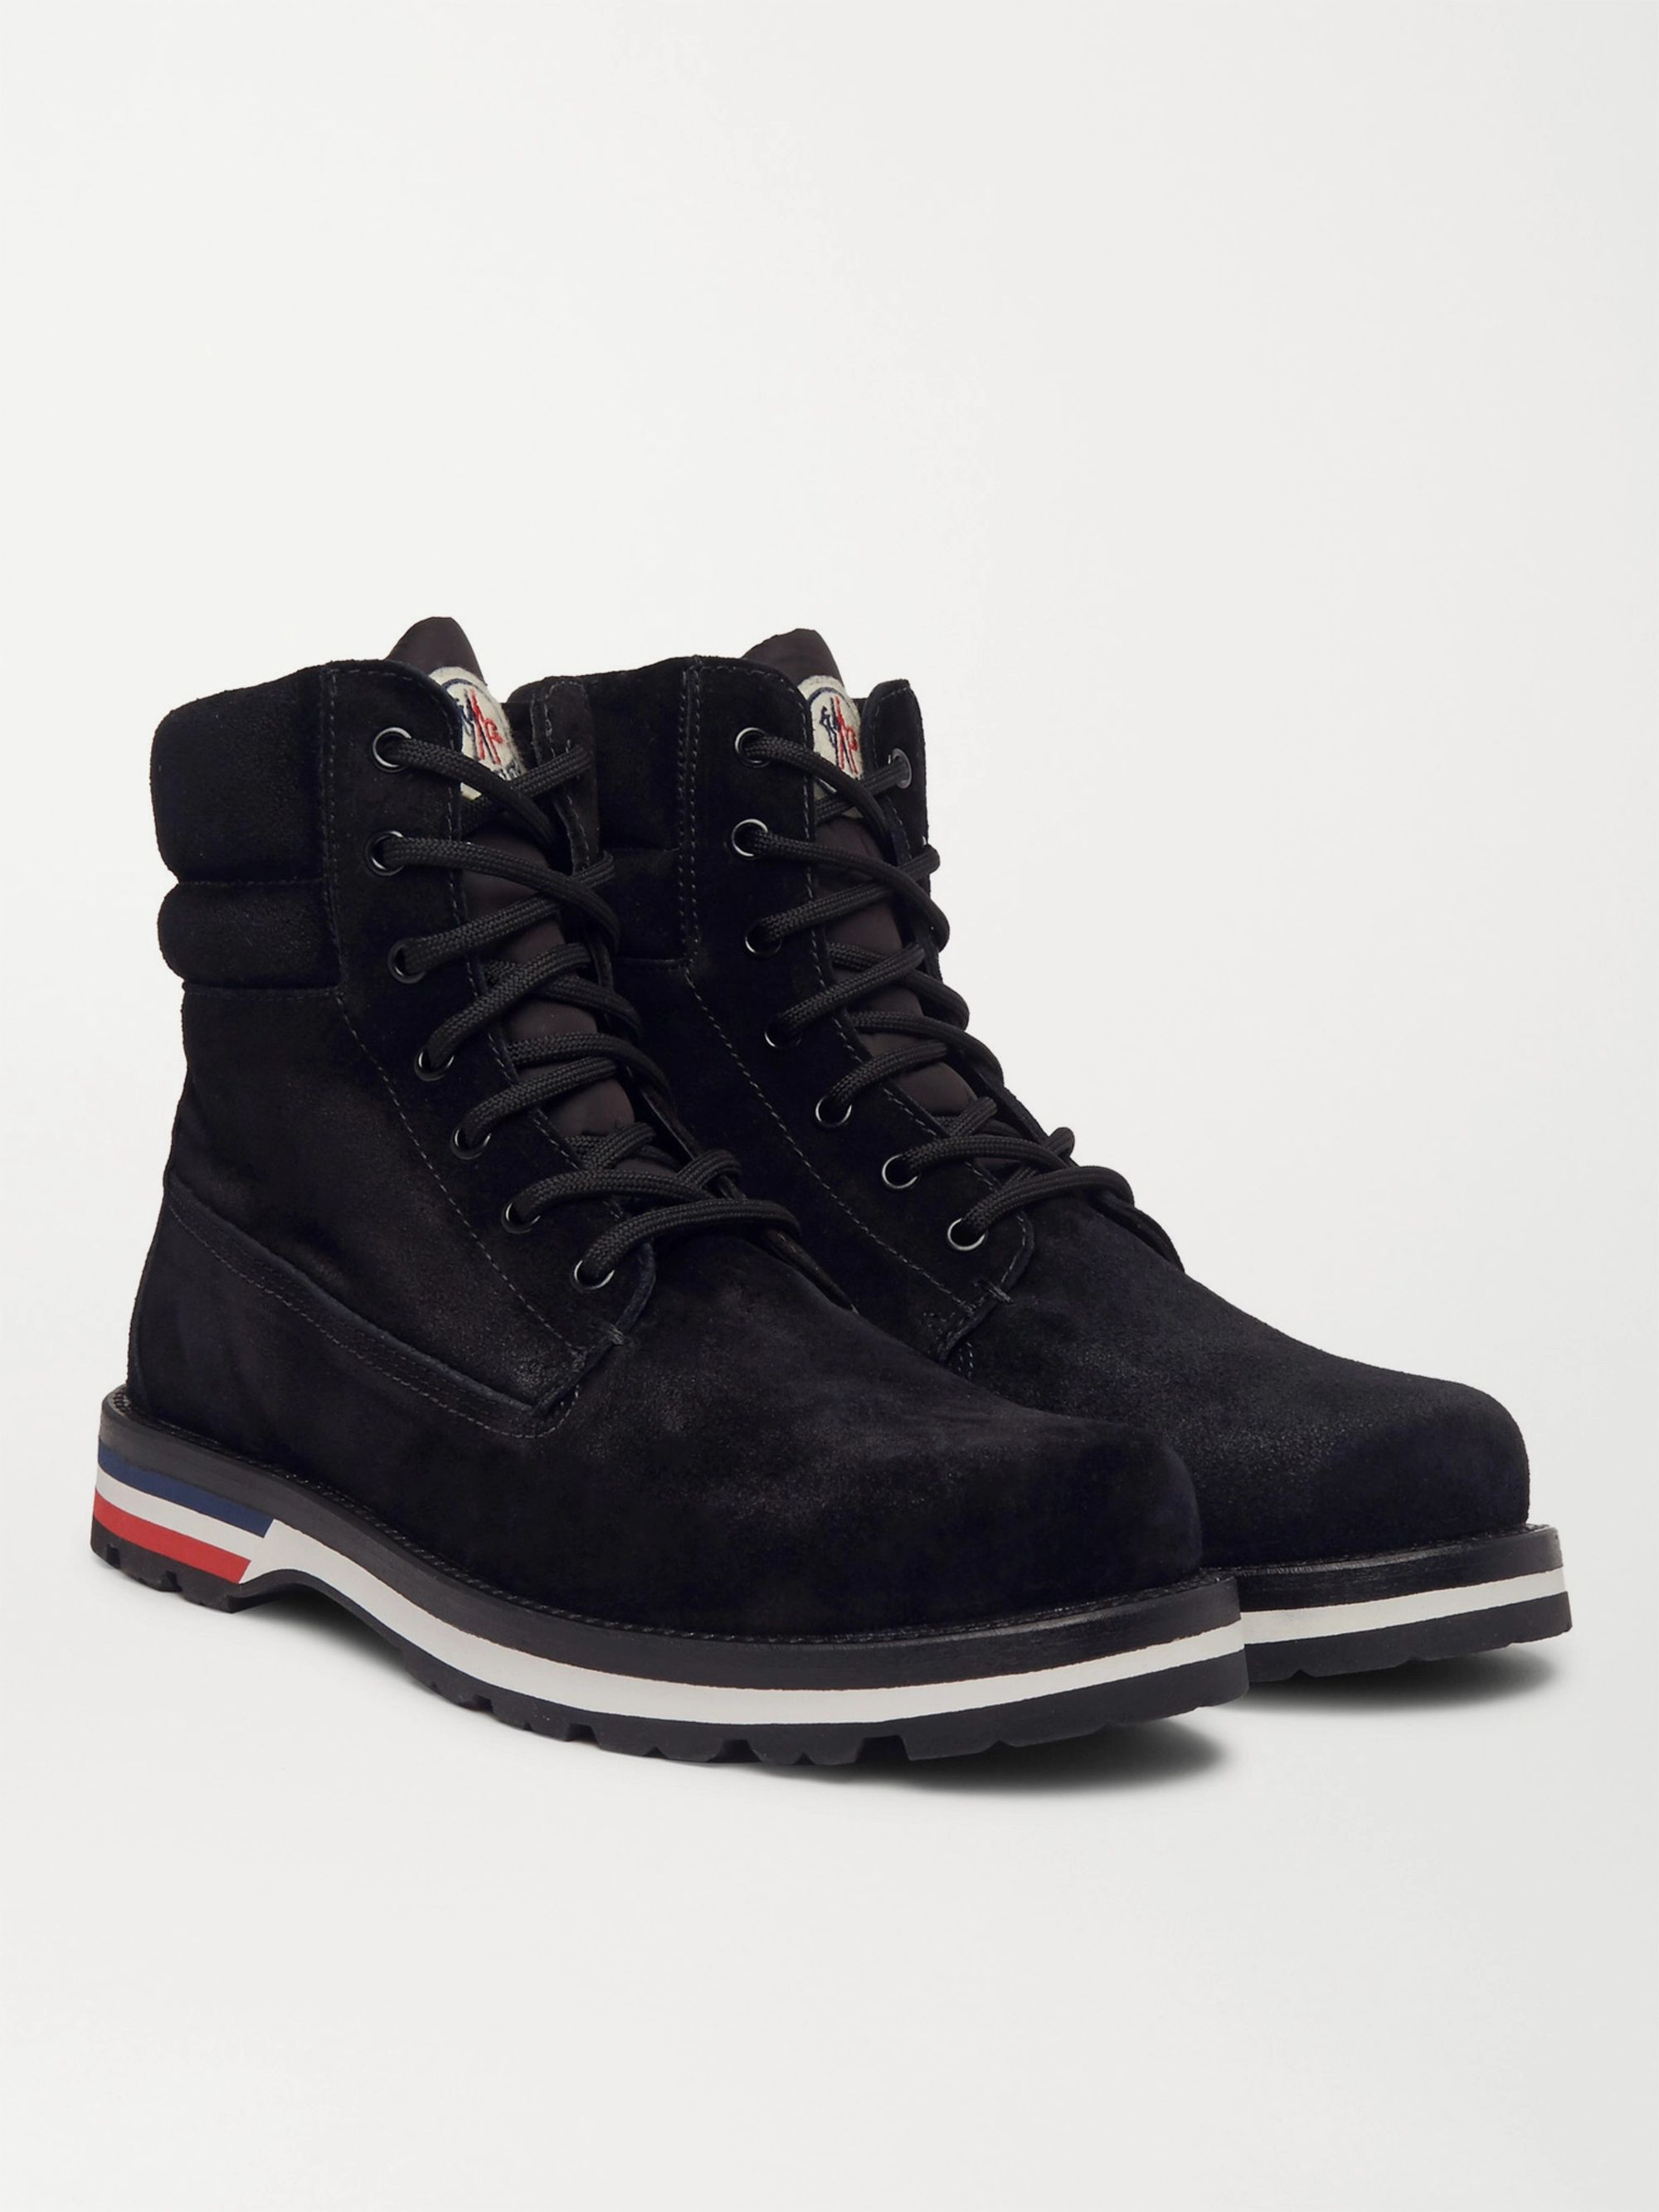 Moncler Vancouver Stivale Suede Boots